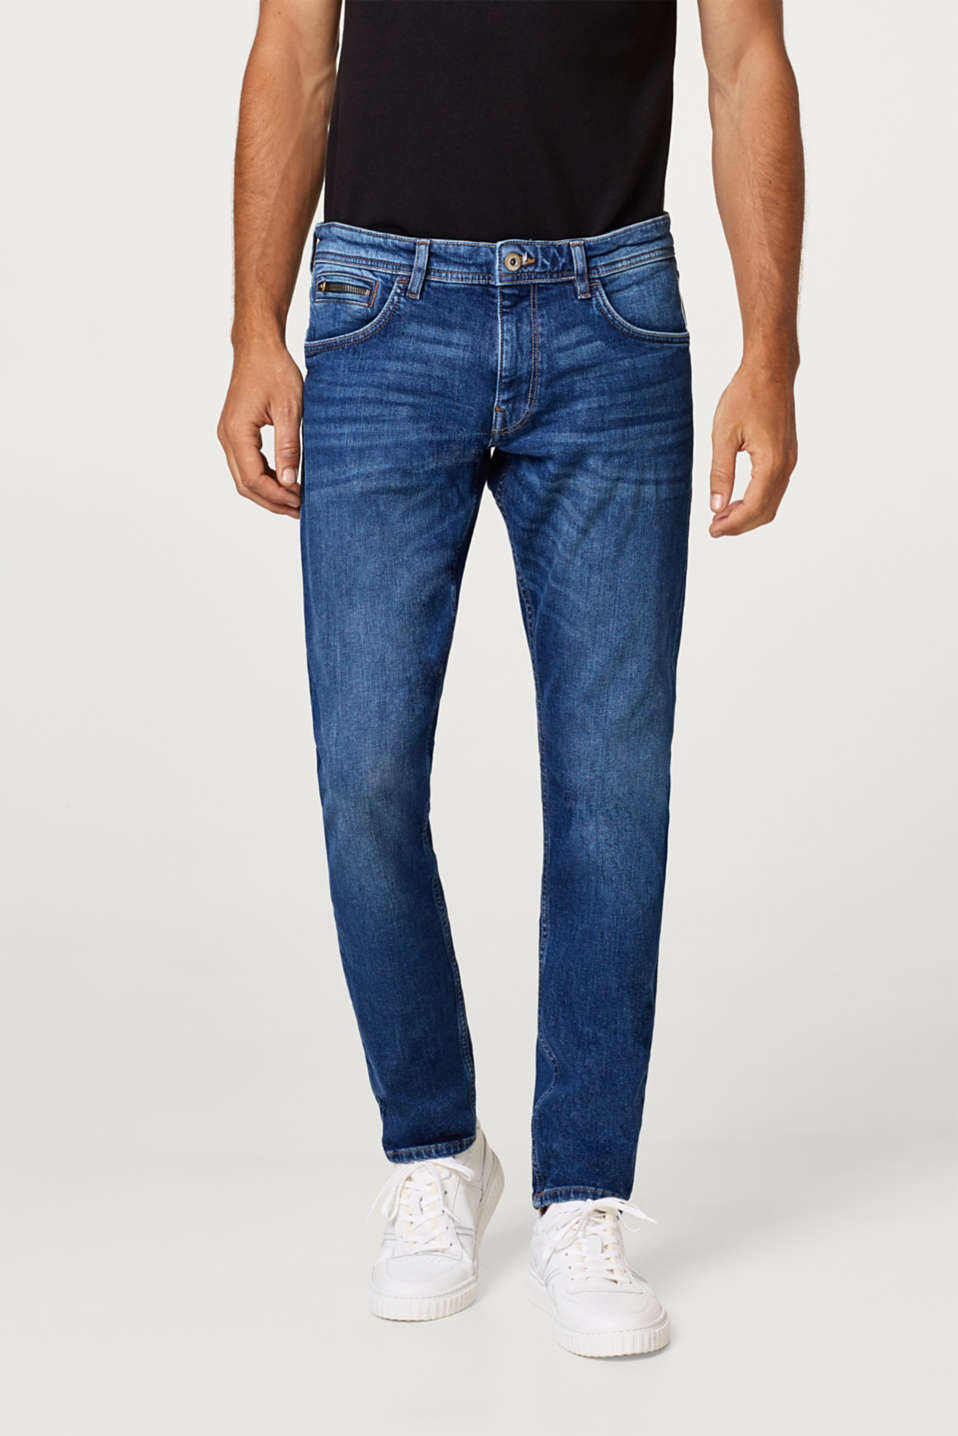 edc - Stretch jeans with zip detail